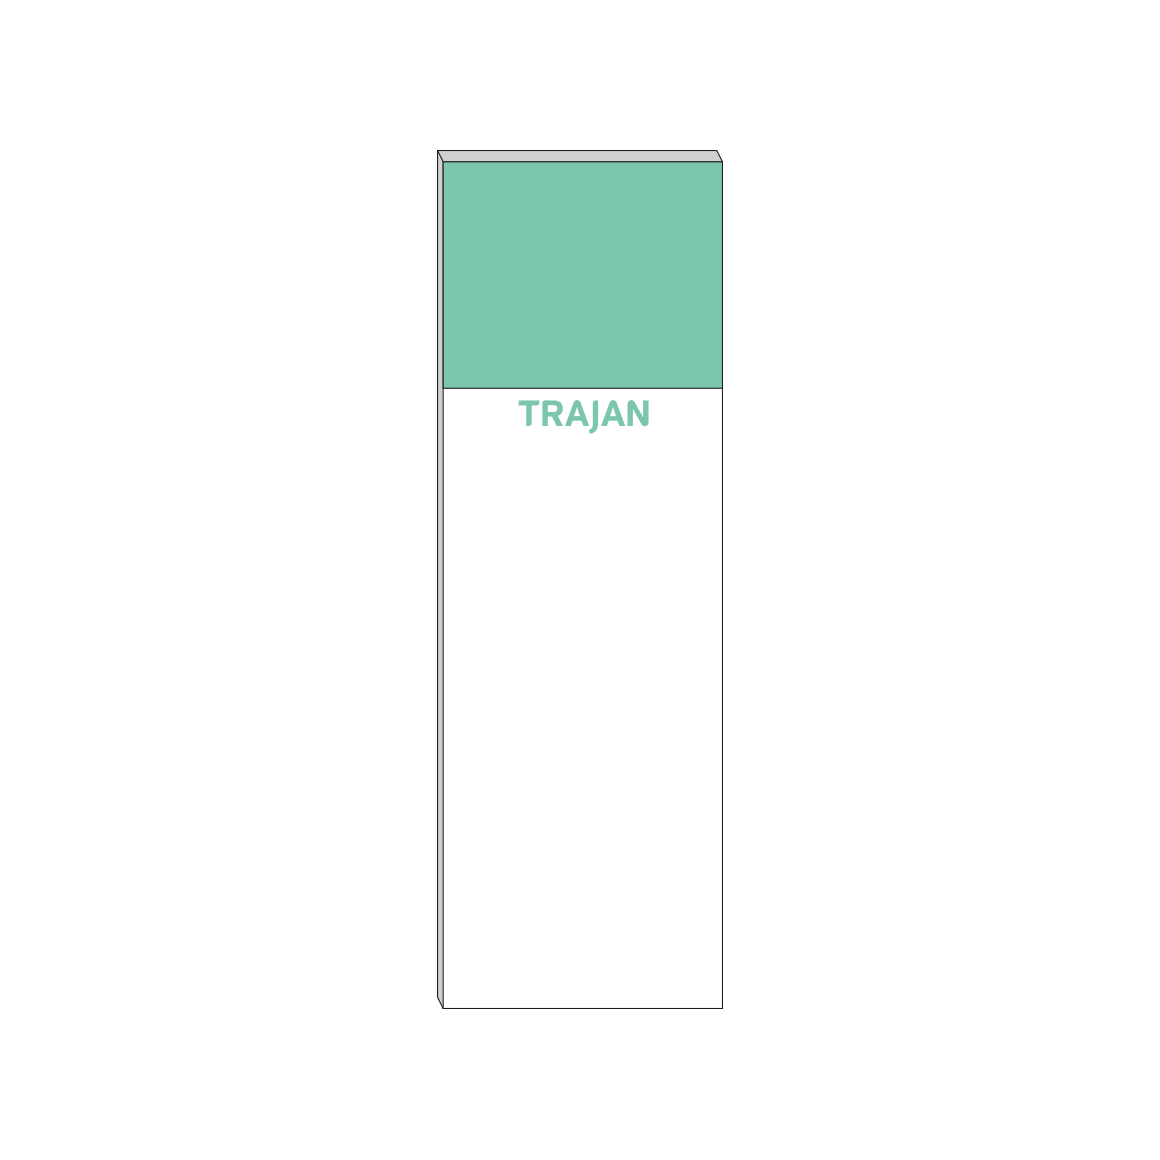 pathology products trajan scientific and medical